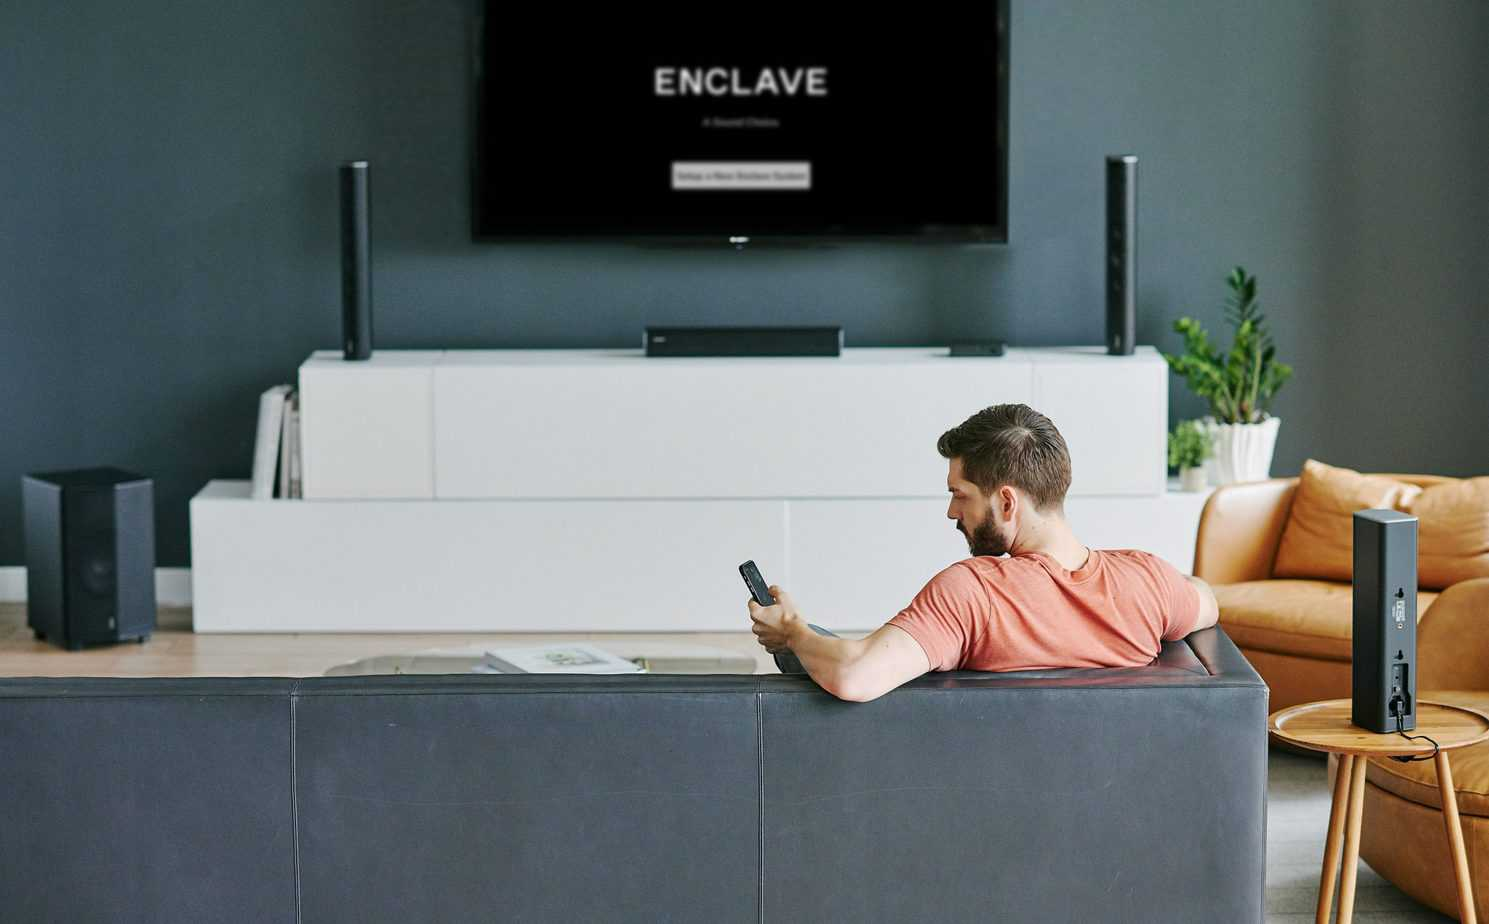 Enclave - CineHome Pro Man on Couch Setting Up